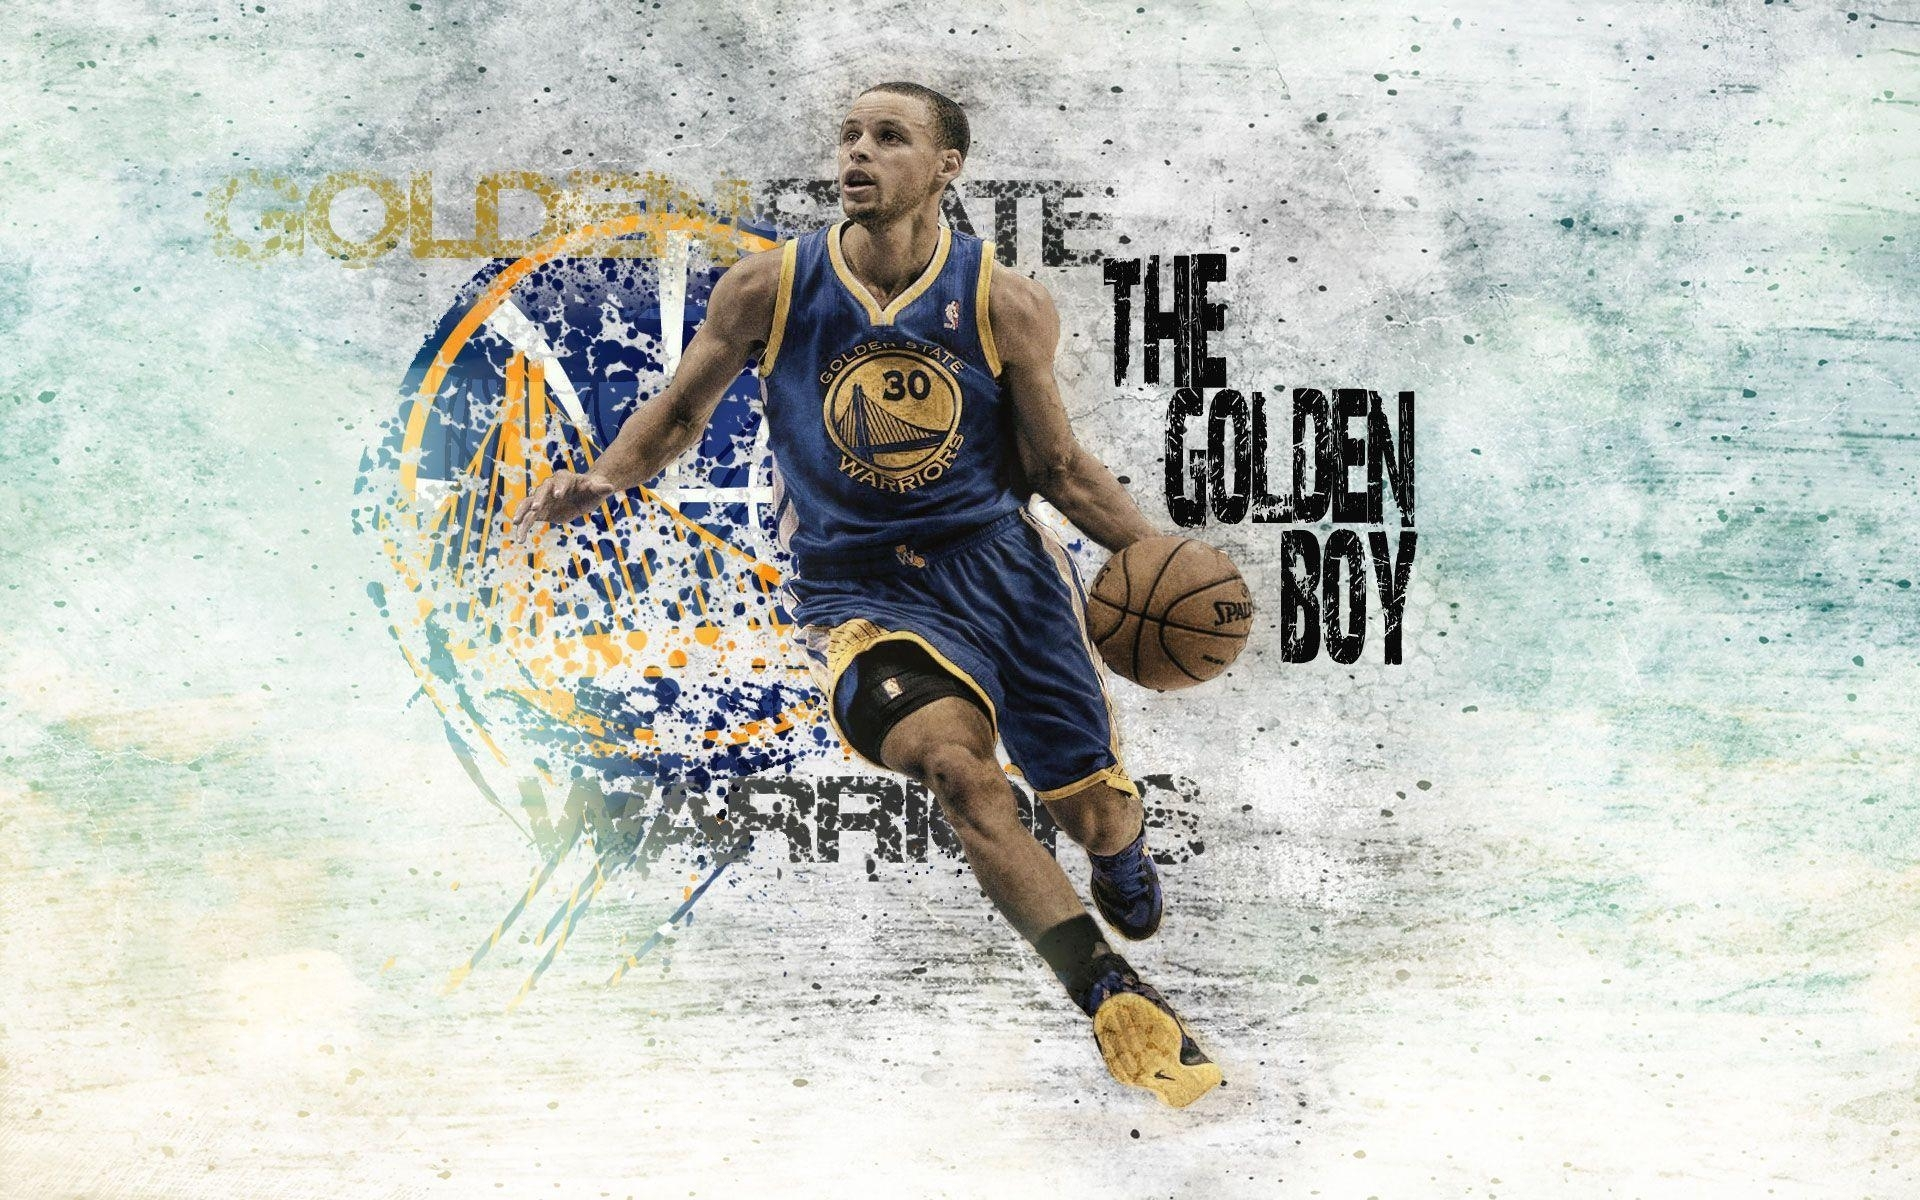 stephen curry wallpapers - wallpaper cave